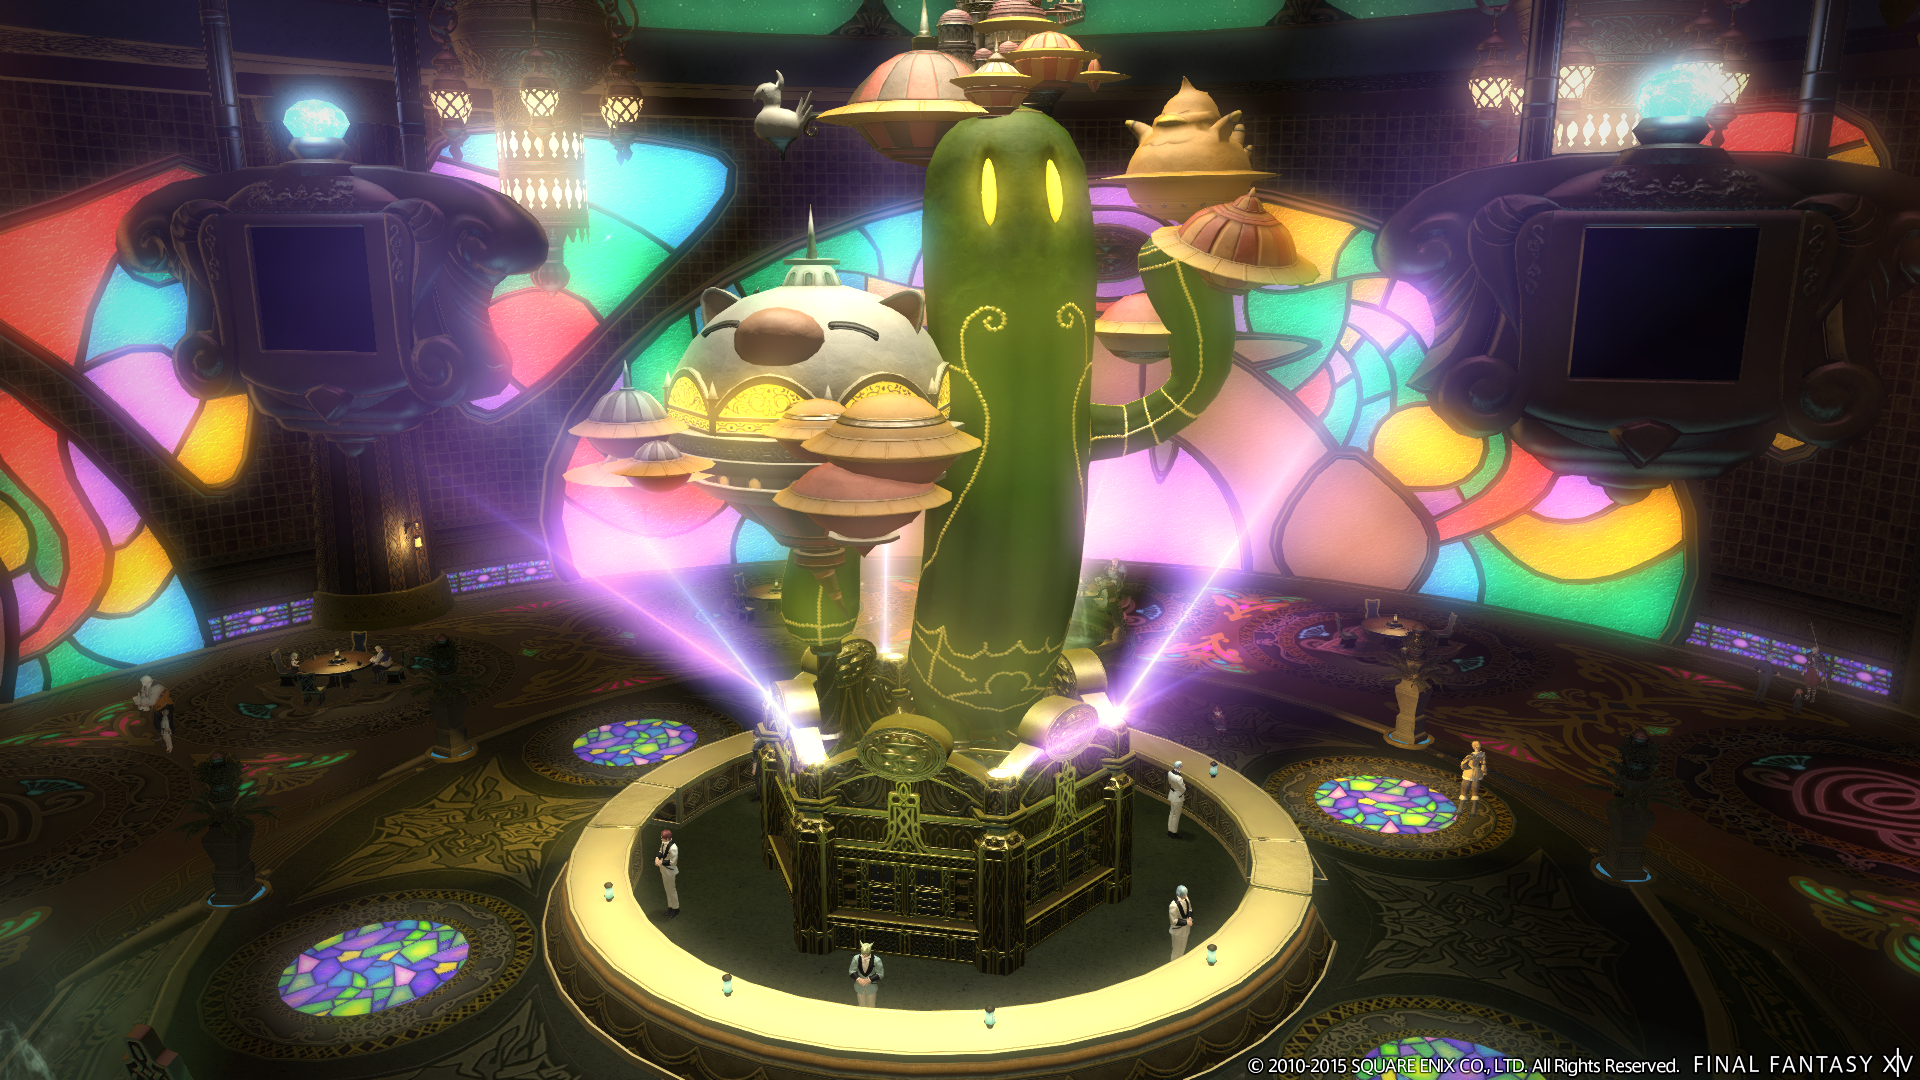 The best part of Final Fantasy VII is now in FFXIV | The Verge